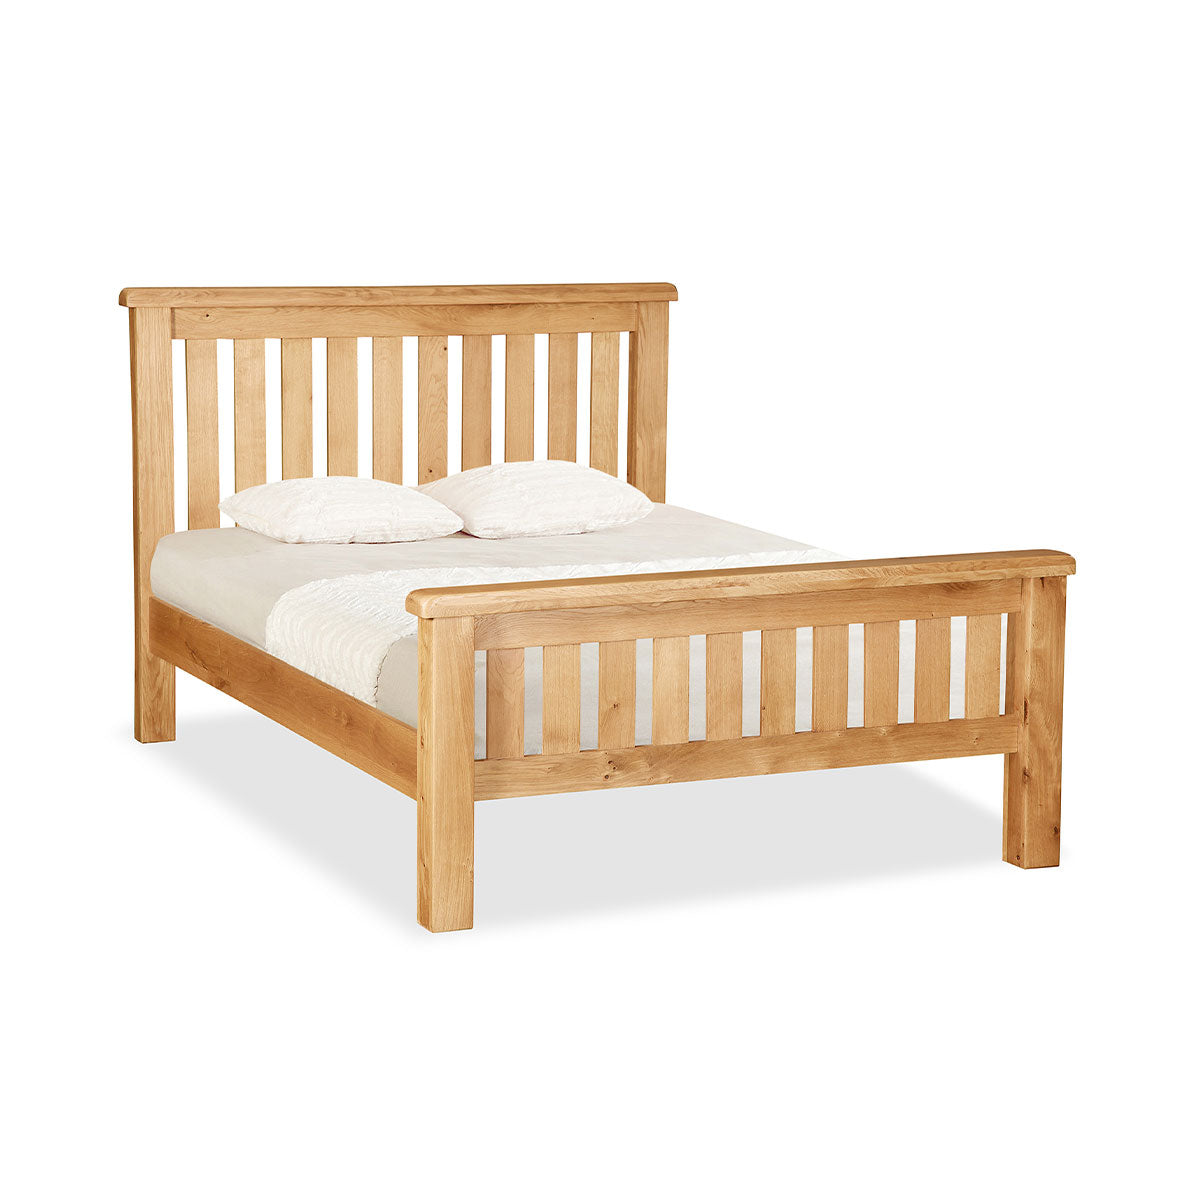 Salisbury 4'6 Slatted Bed